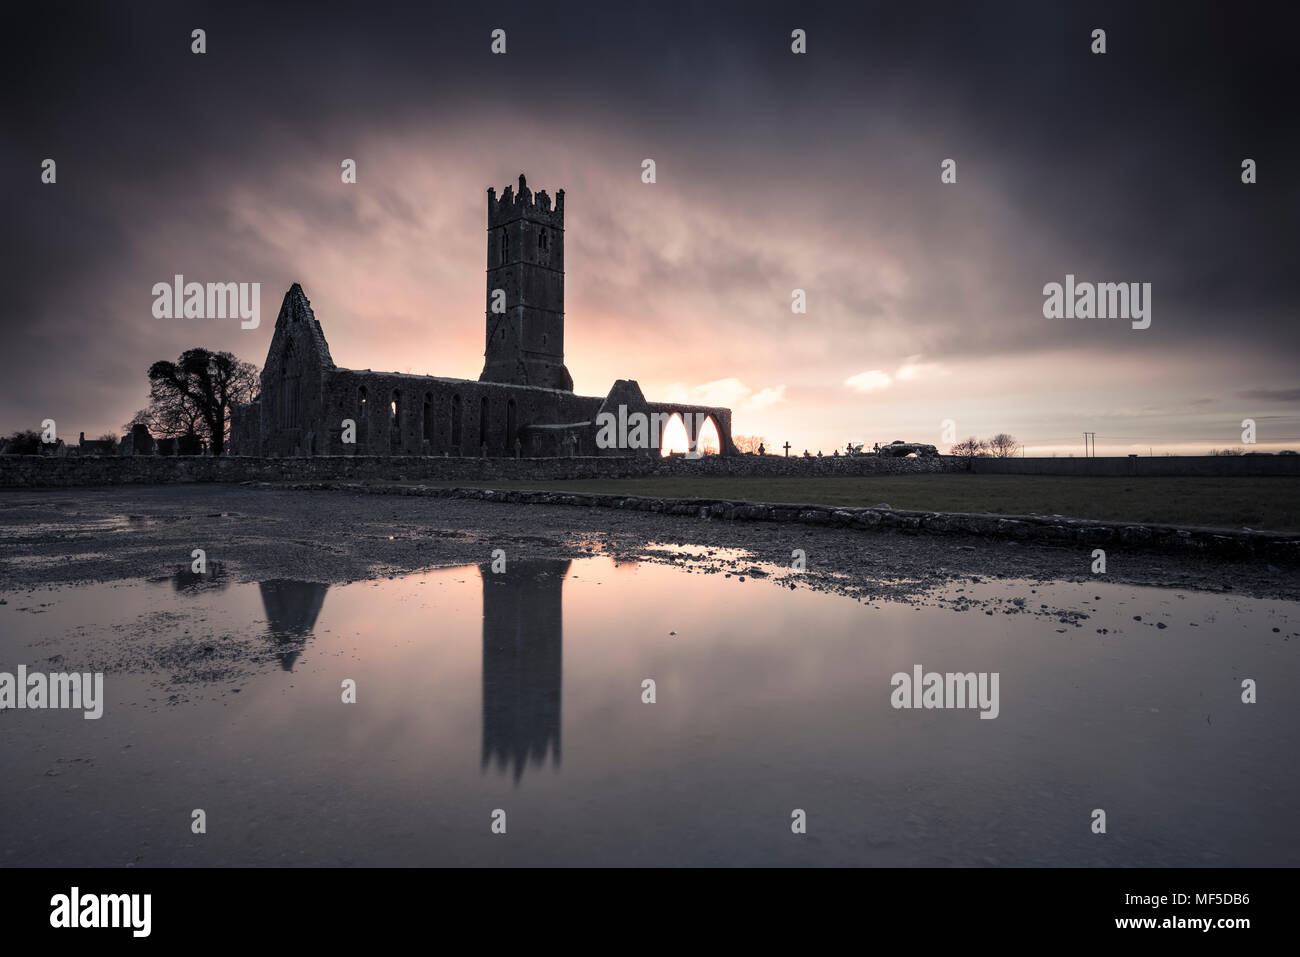 Ireland, abandoned church ruin - Stock Image